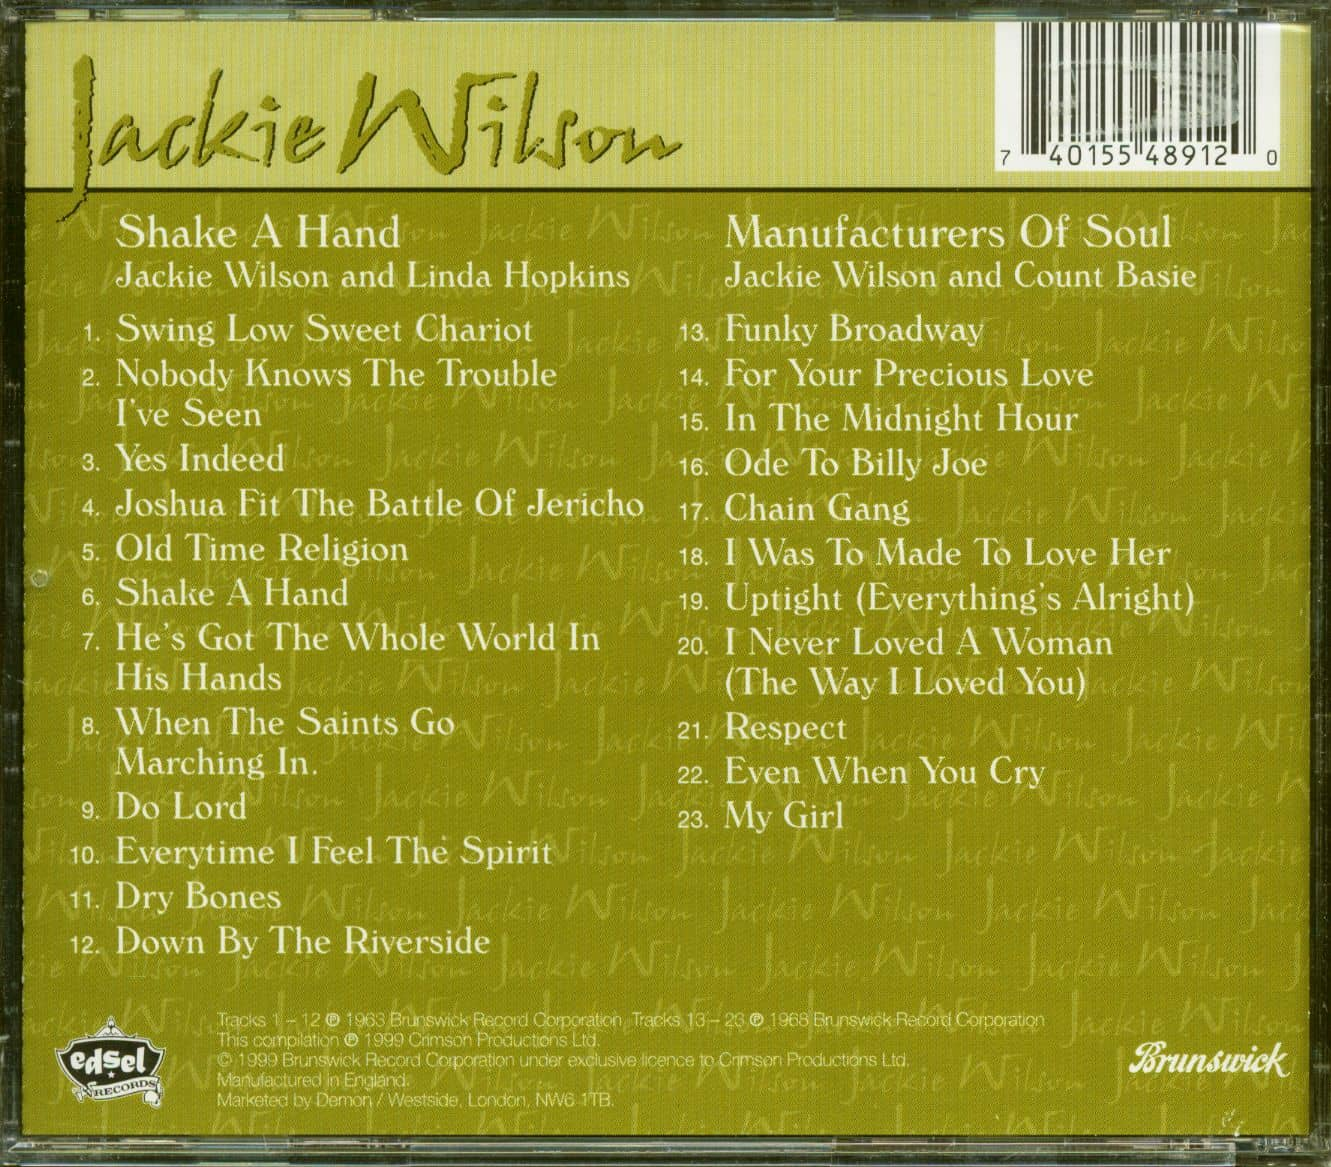 Jackie Wilson CD: Shake A Hand - Manufacturers Of Soul (CD) - Bear Family Records